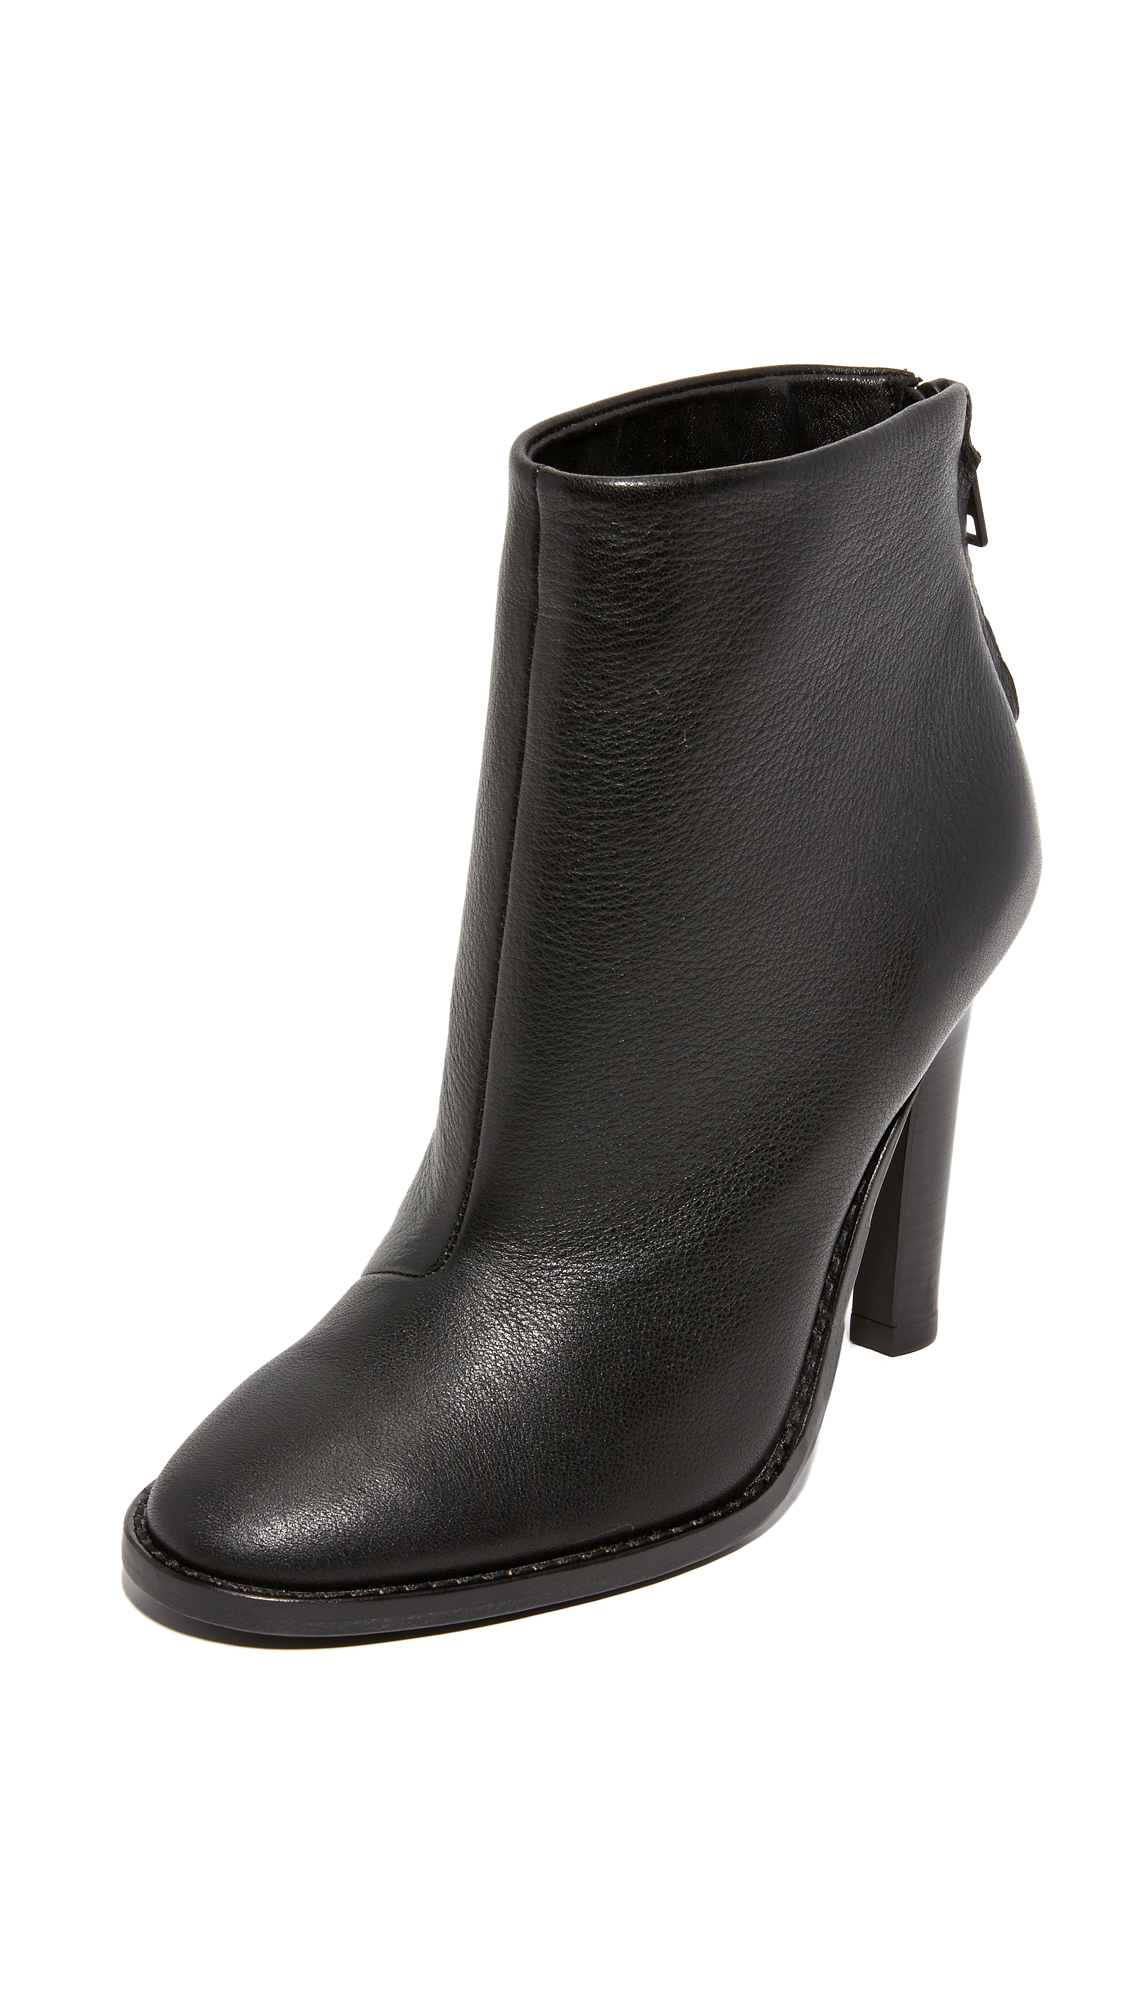 Joie Blayze Booties - Black